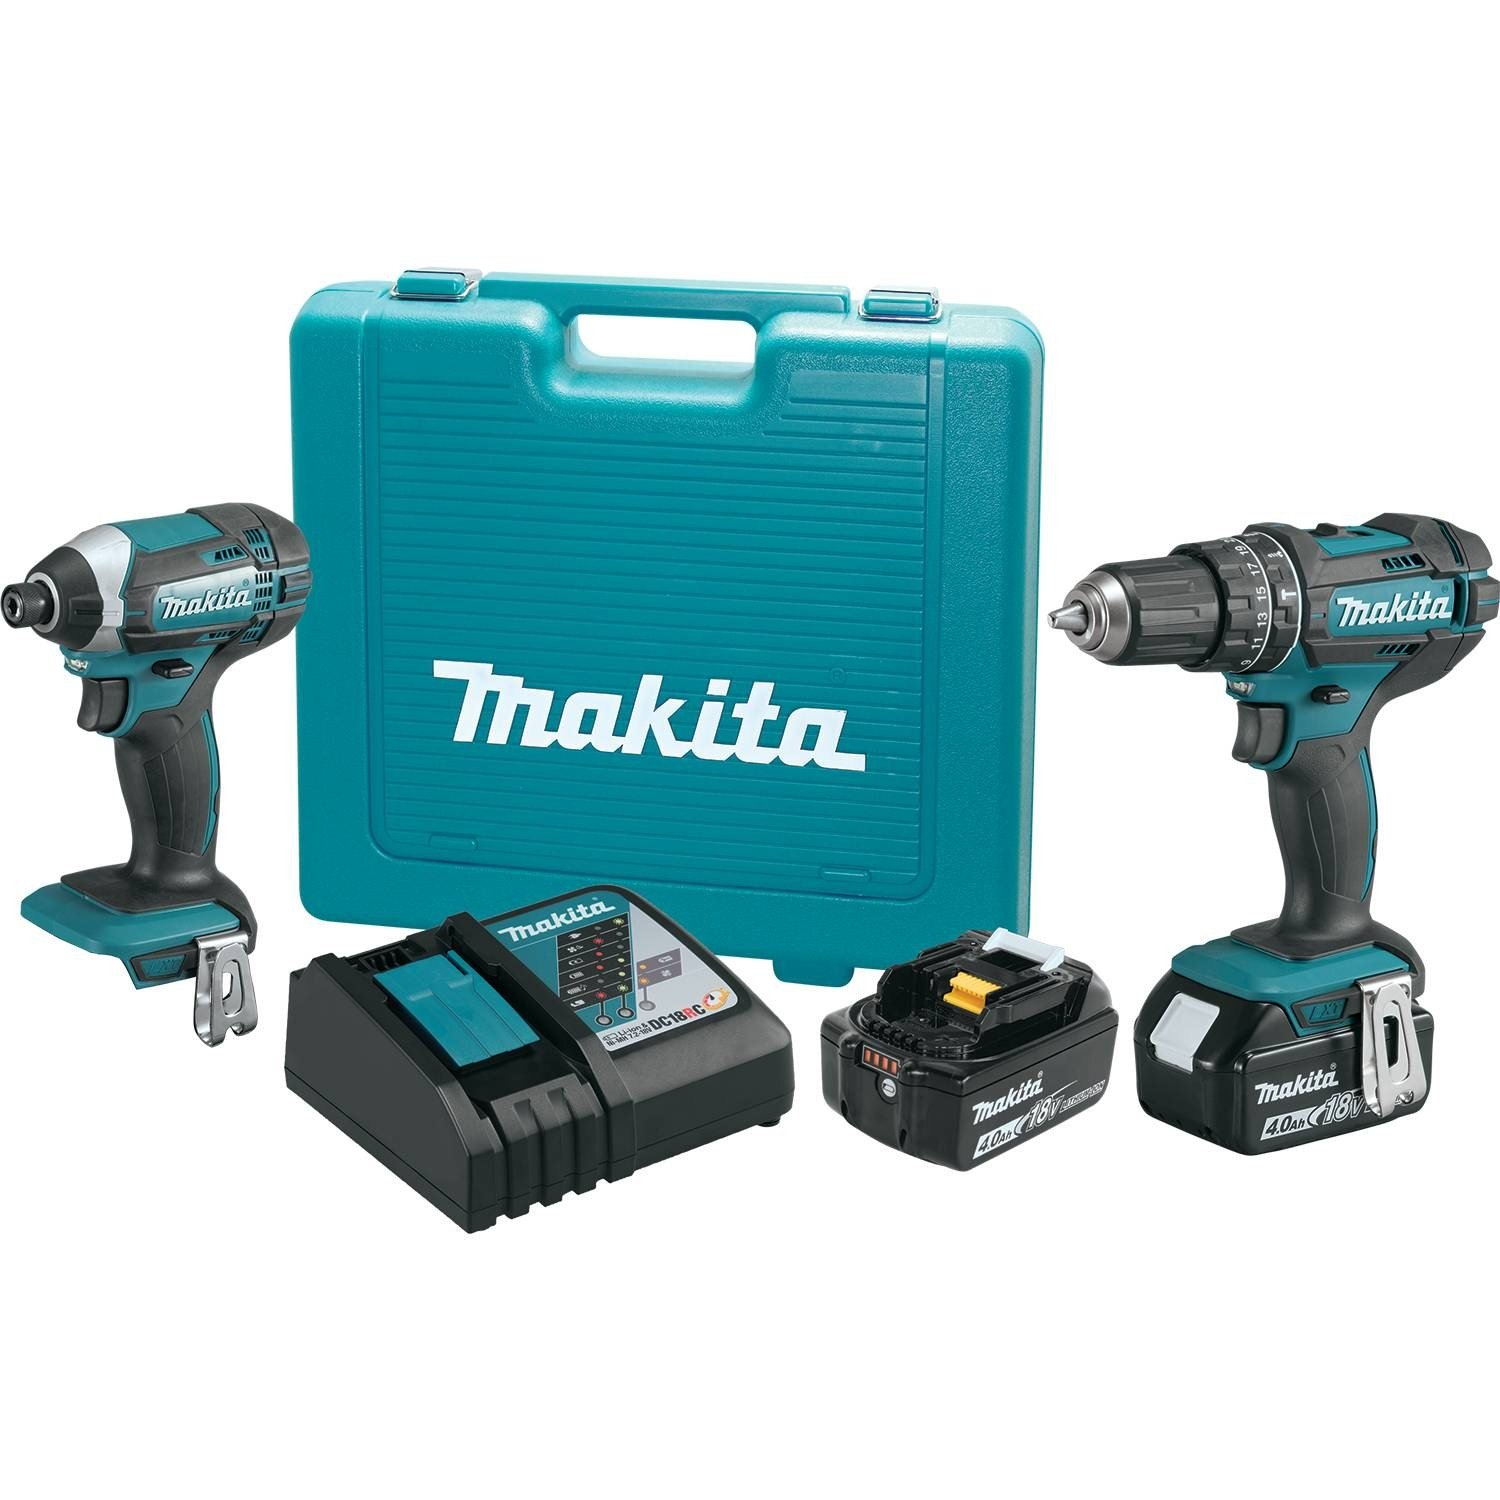 Makita XT261M 2 Piece 18V Lithium-Ion 4.0 Ah Cordless Combo Kit by Makita B01FSFZCFY